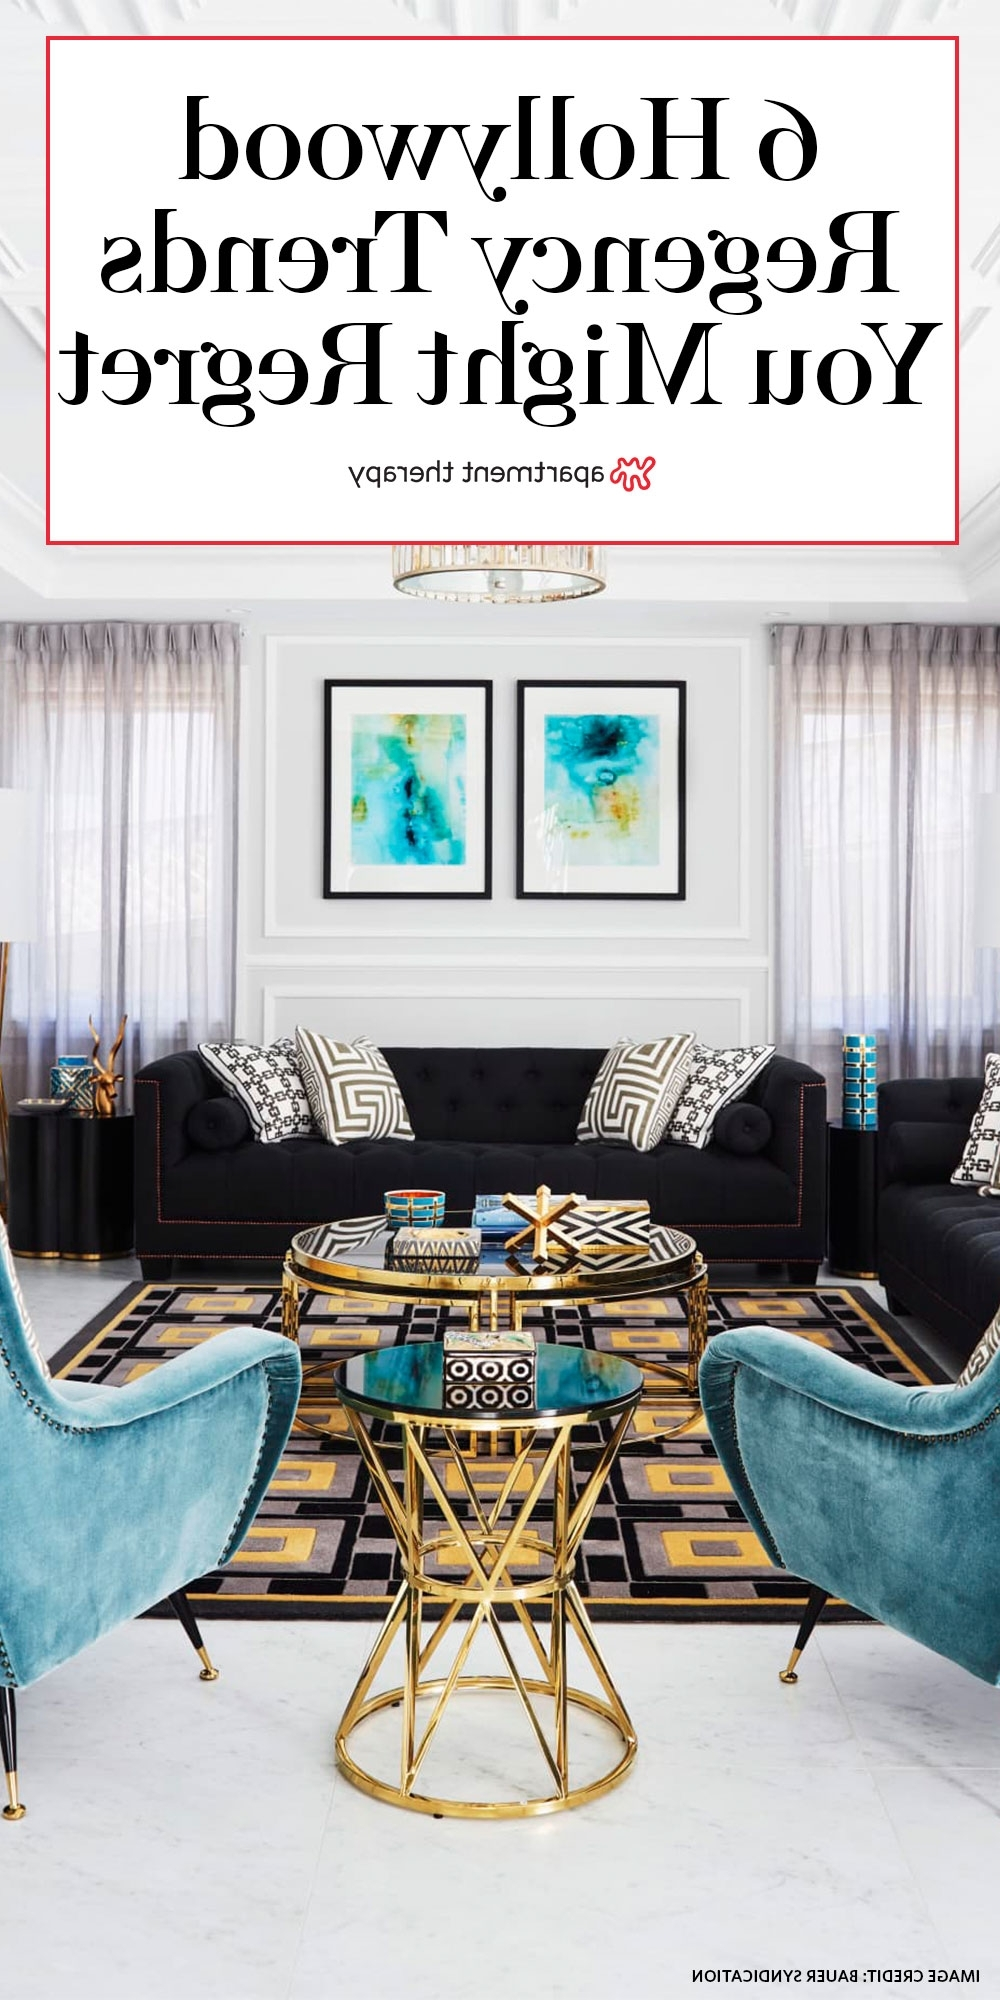 The Hollywood Regency Trends You Might Regret, According To 30+ Hollywood Regency Living Room Design Ideas